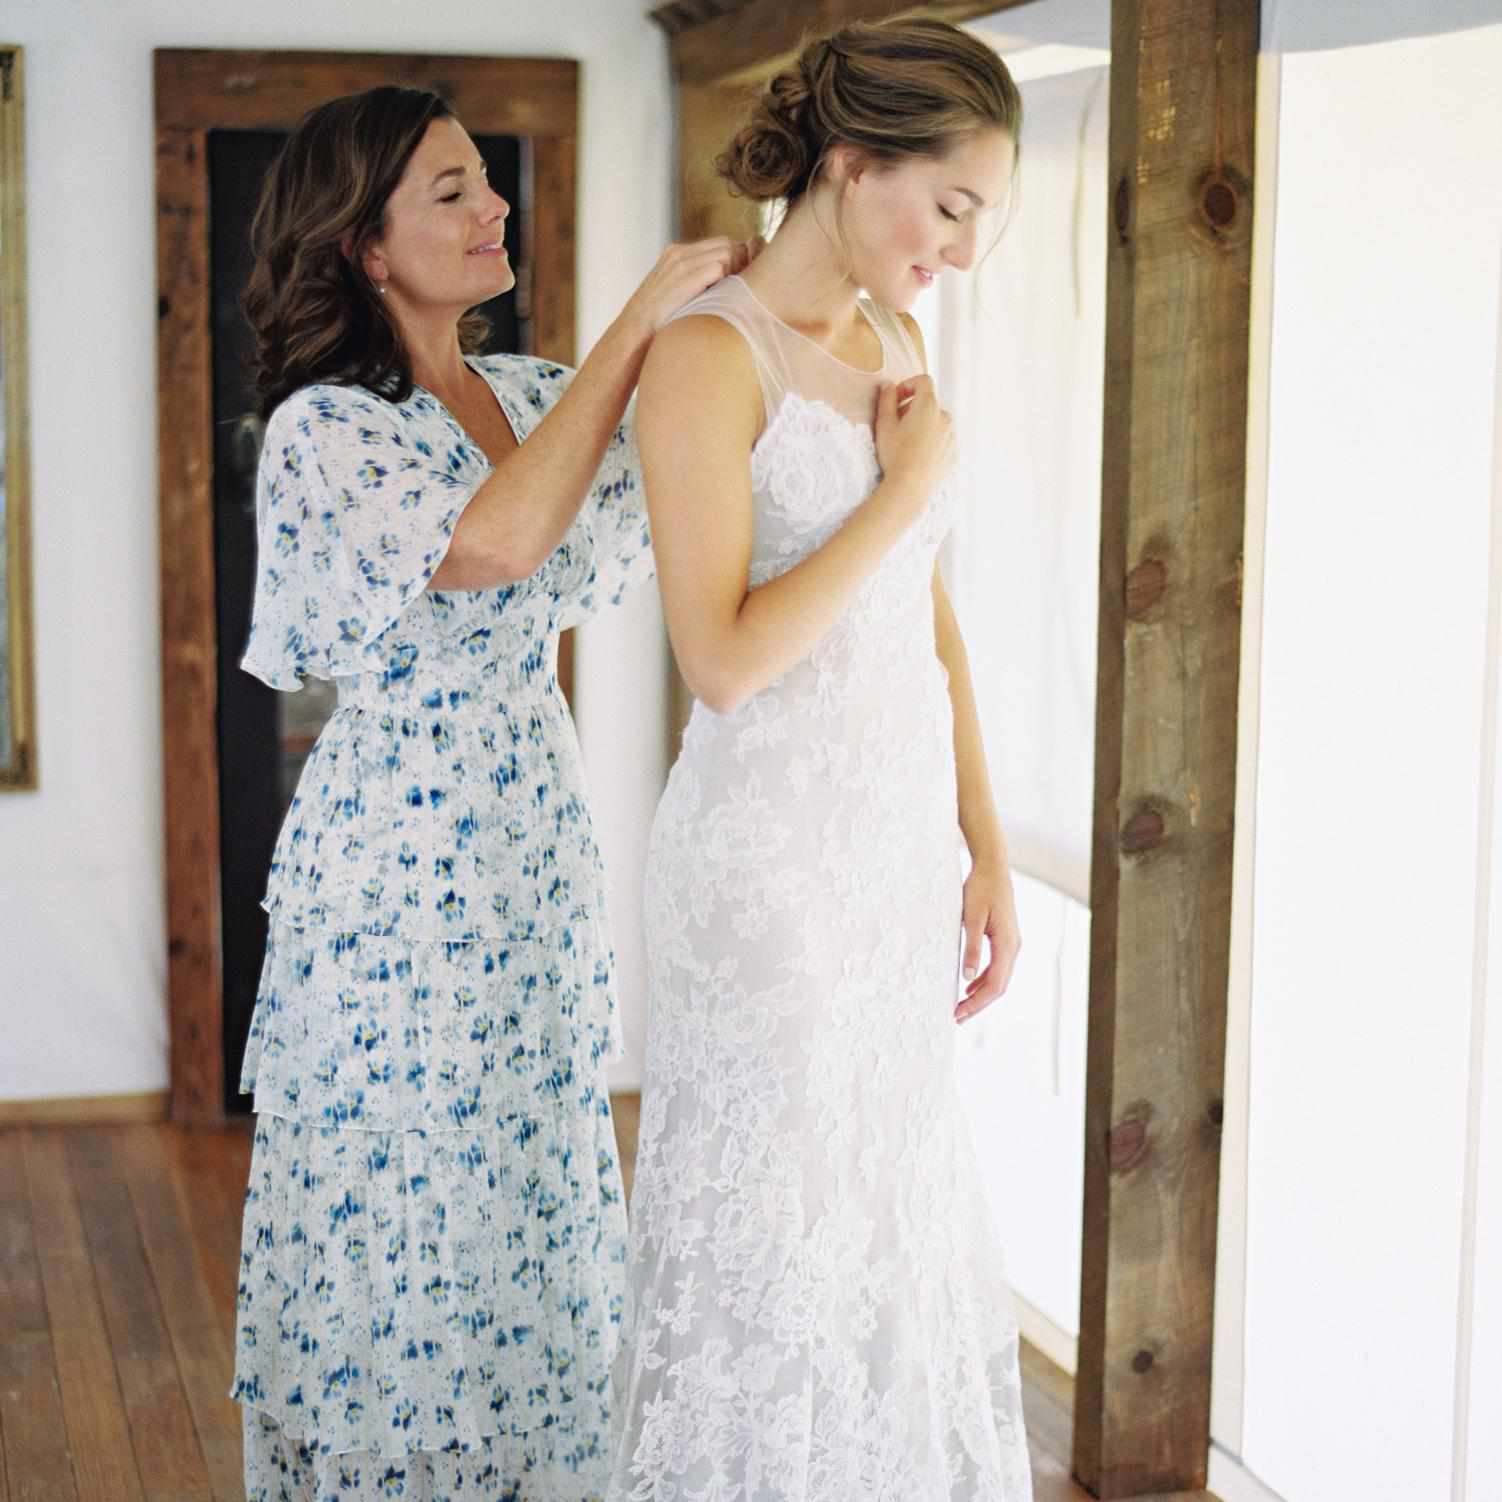 can my mother wear a long dress to my wedding?